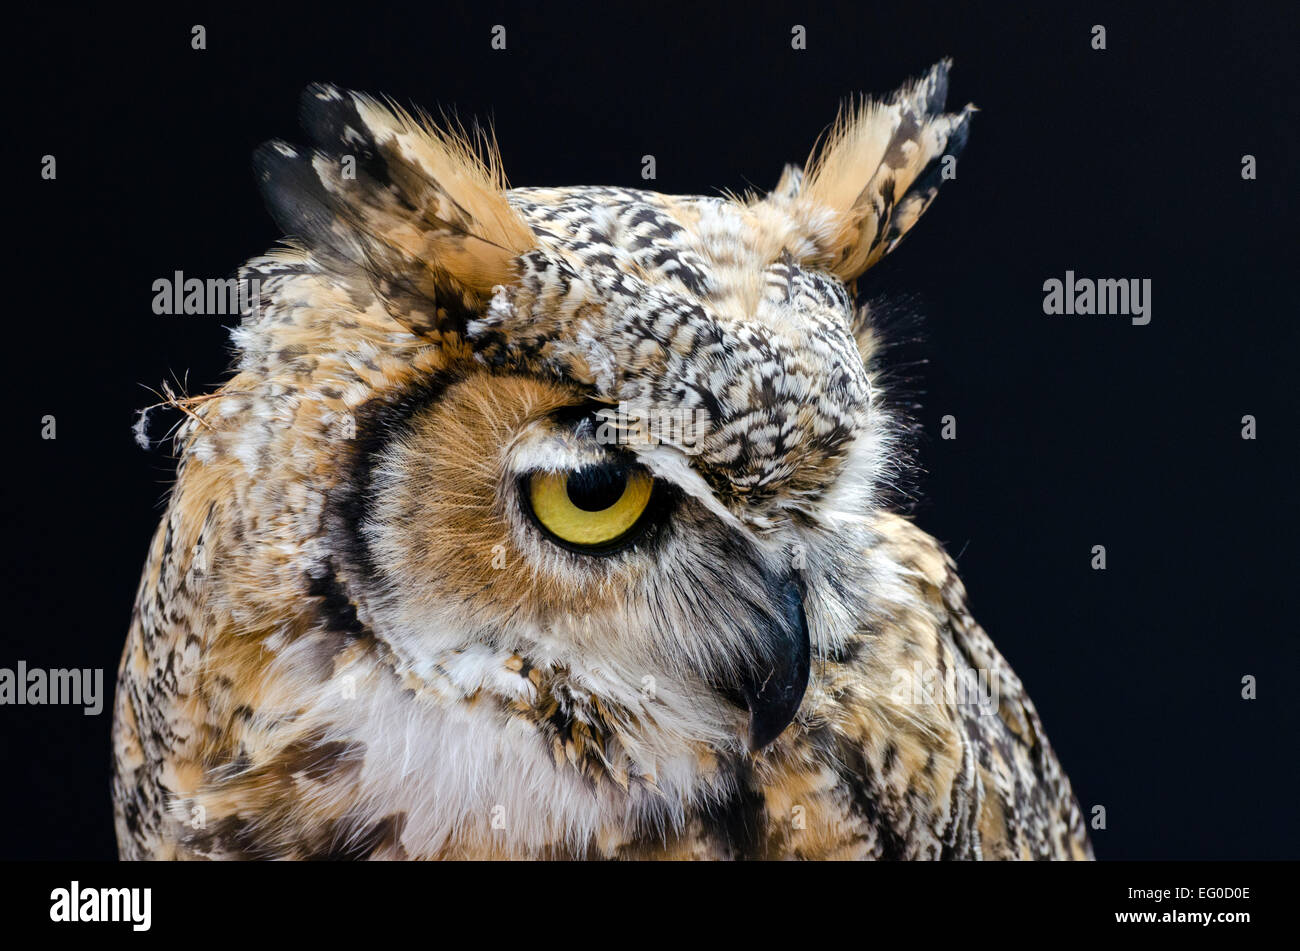 A Great horned owl at a bird of prey rescue centre. - Stock Image